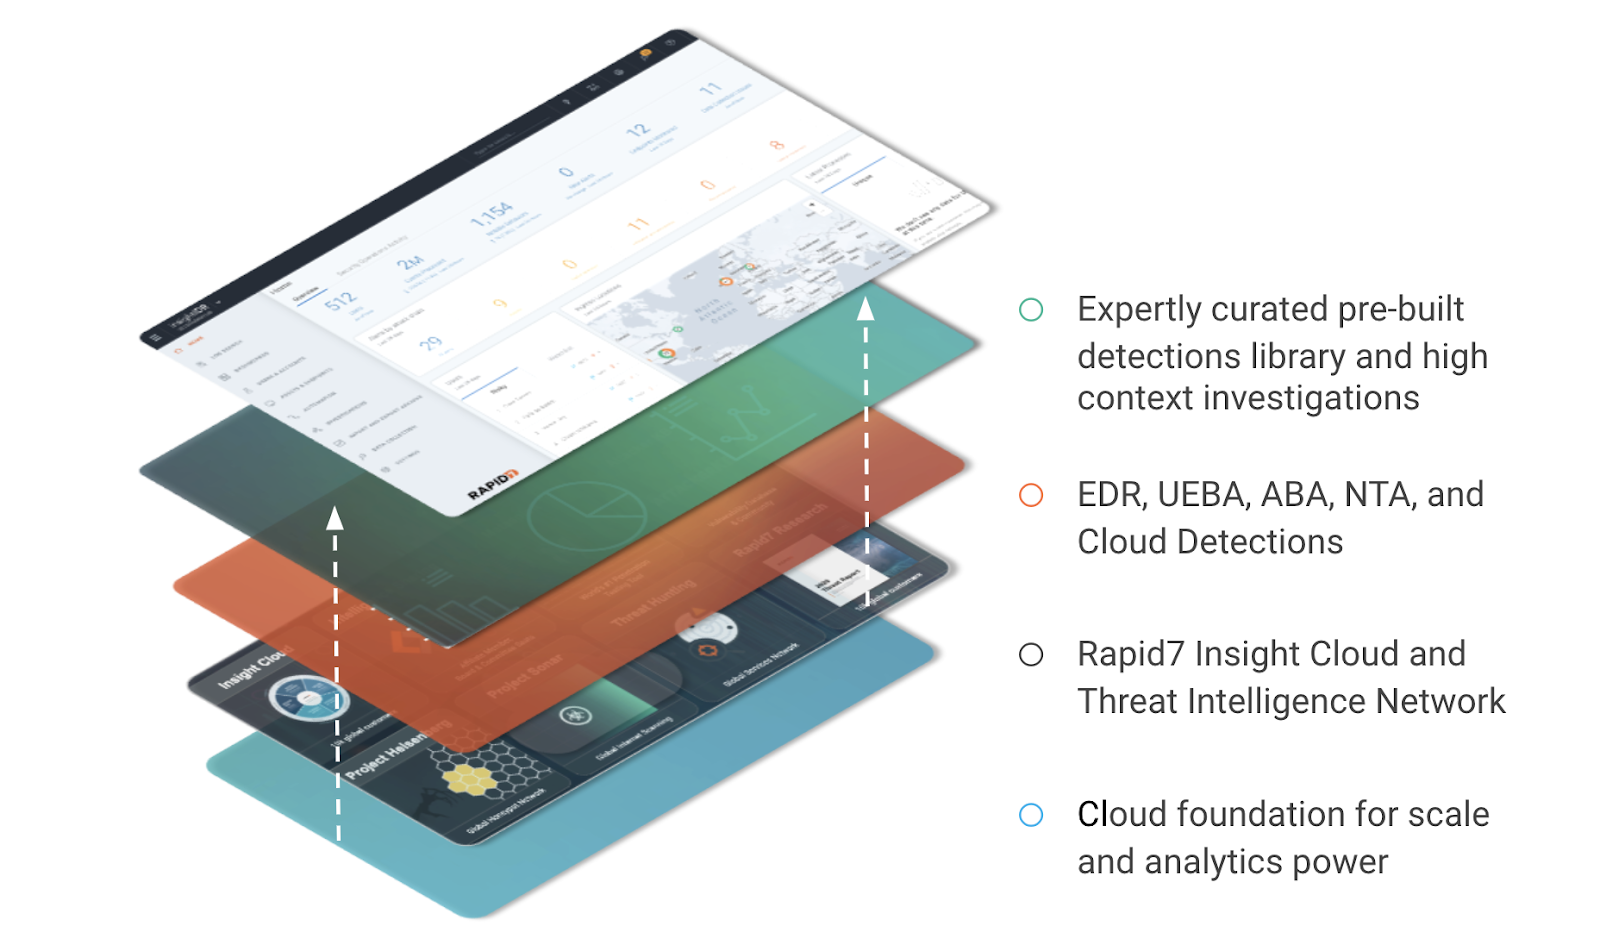 2021 Detection and Response Planning, Part 2: Driving SOC Efficiency With a Detections-First Approach to SIEM